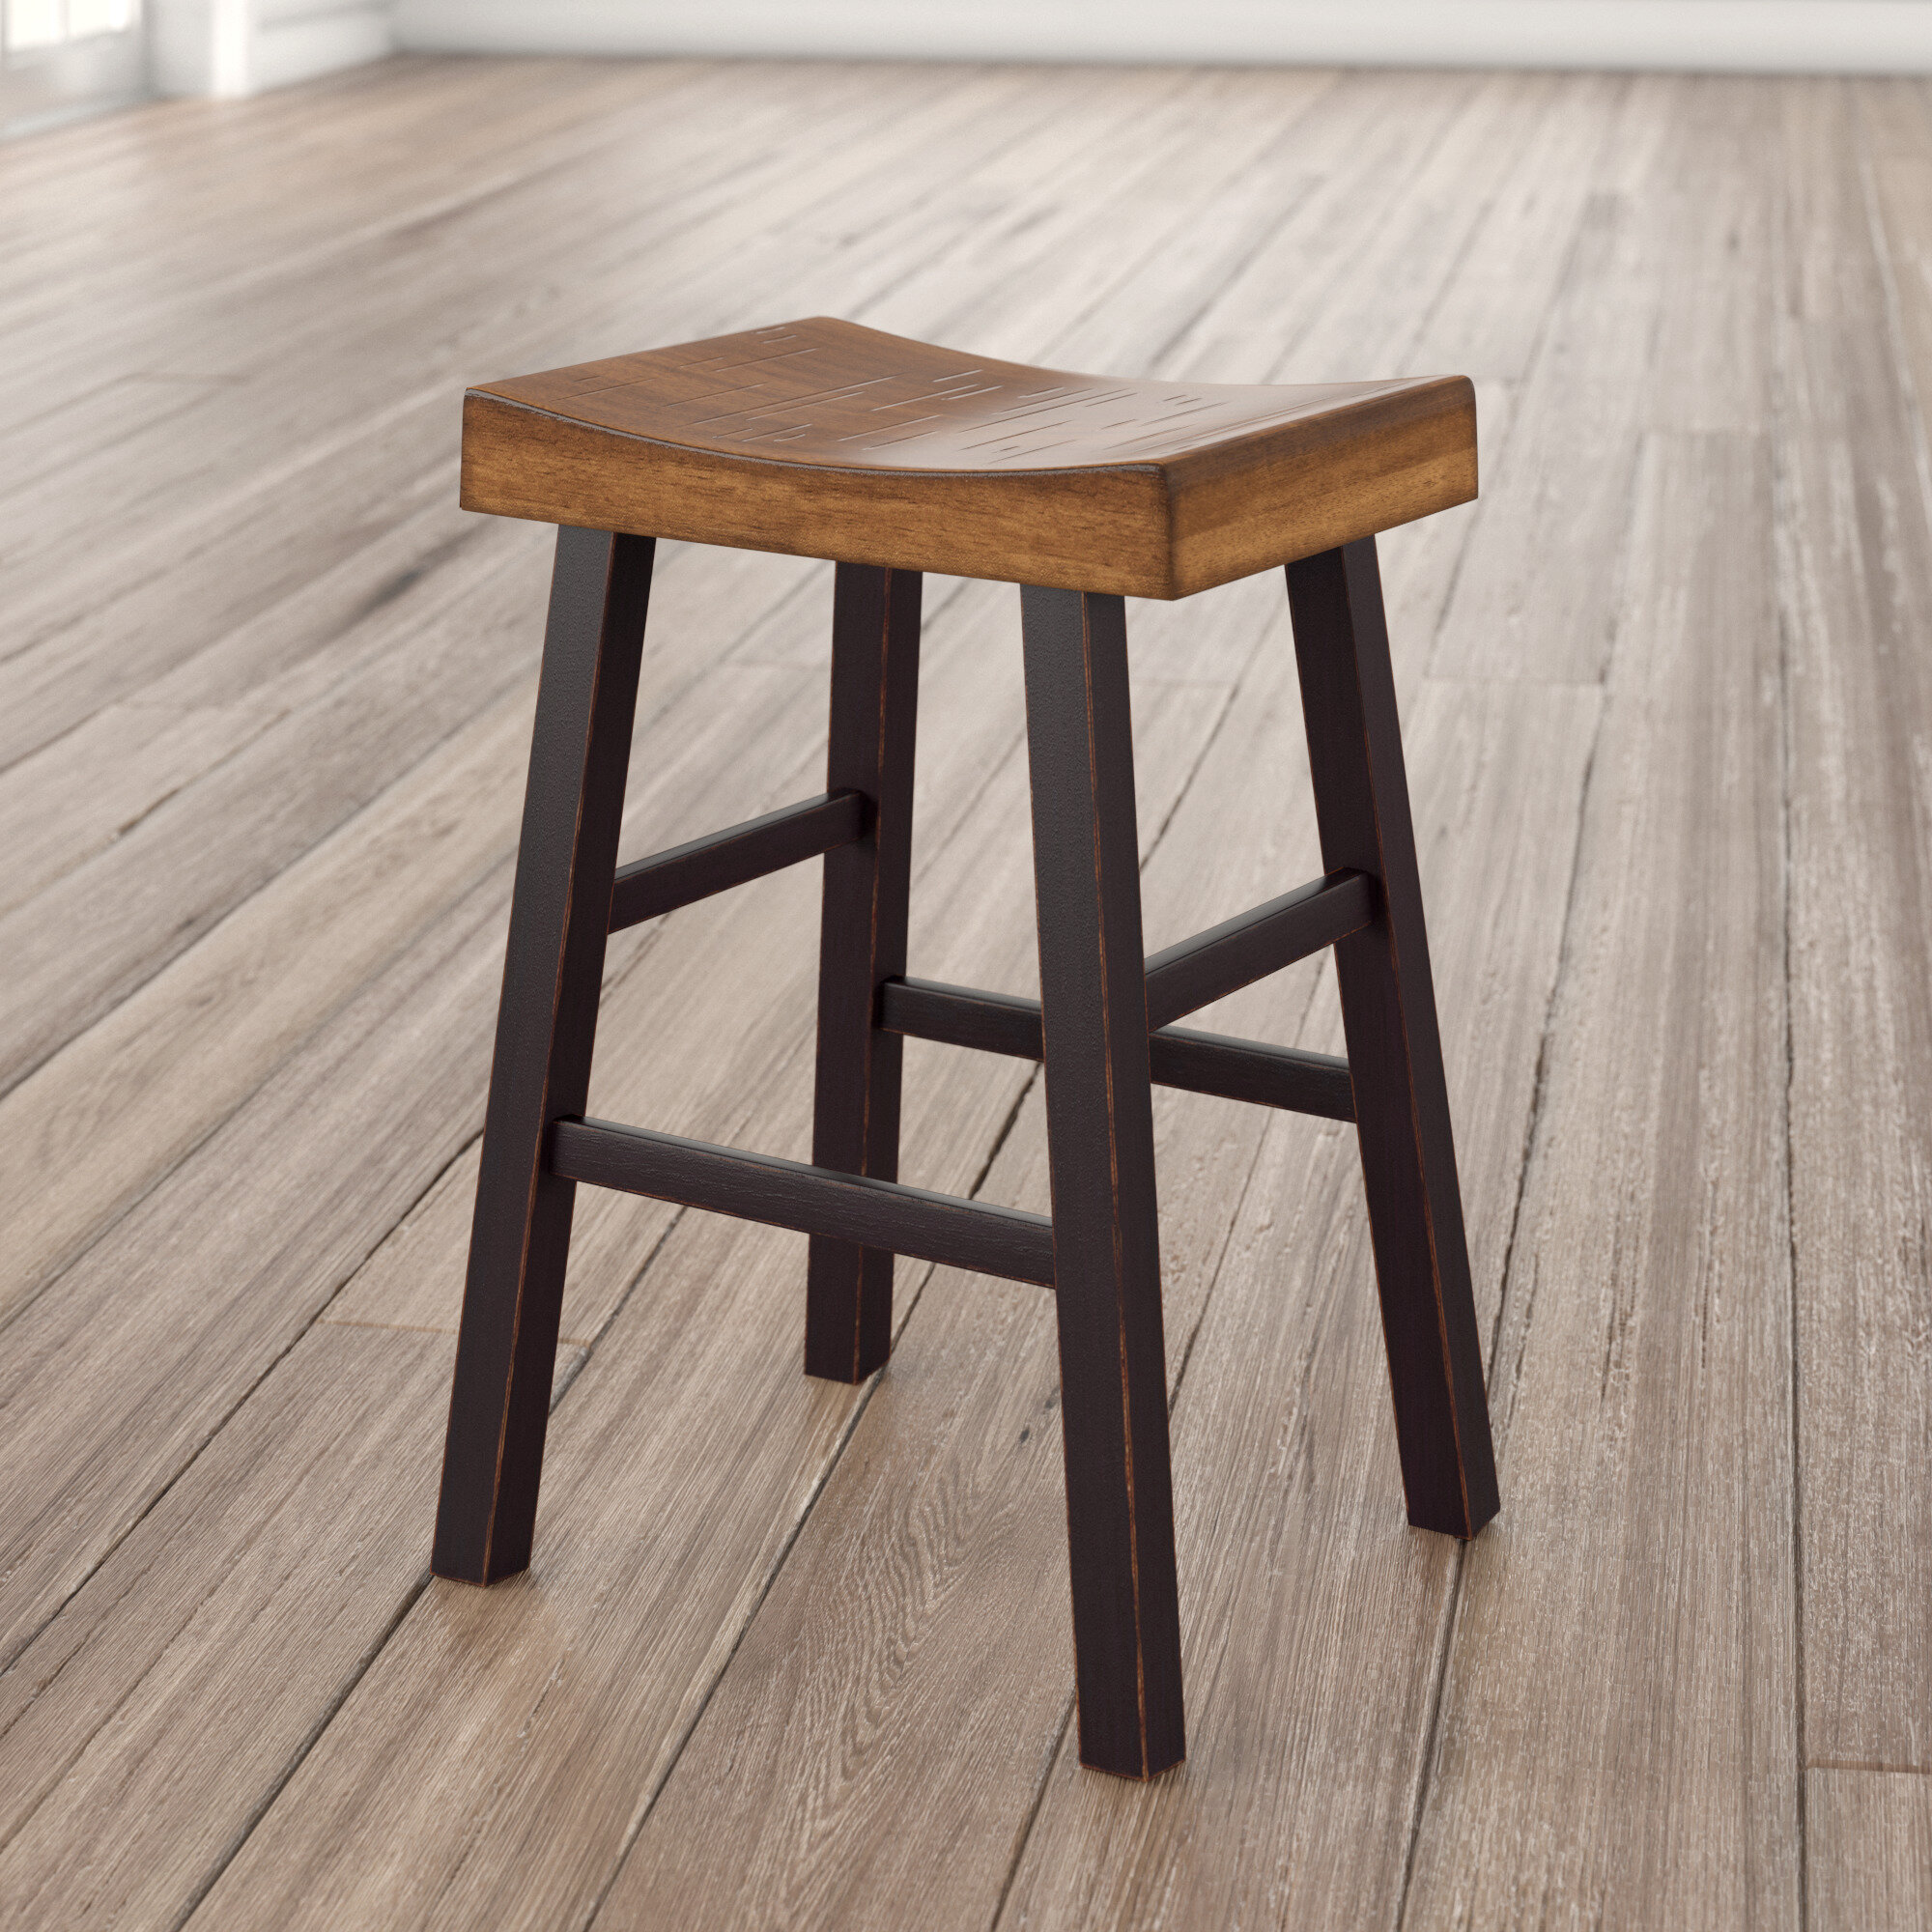 Sensational Hayden Bar Counter Stool Caraccident5 Cool Chair Designs And Ideas Caraccident5Info